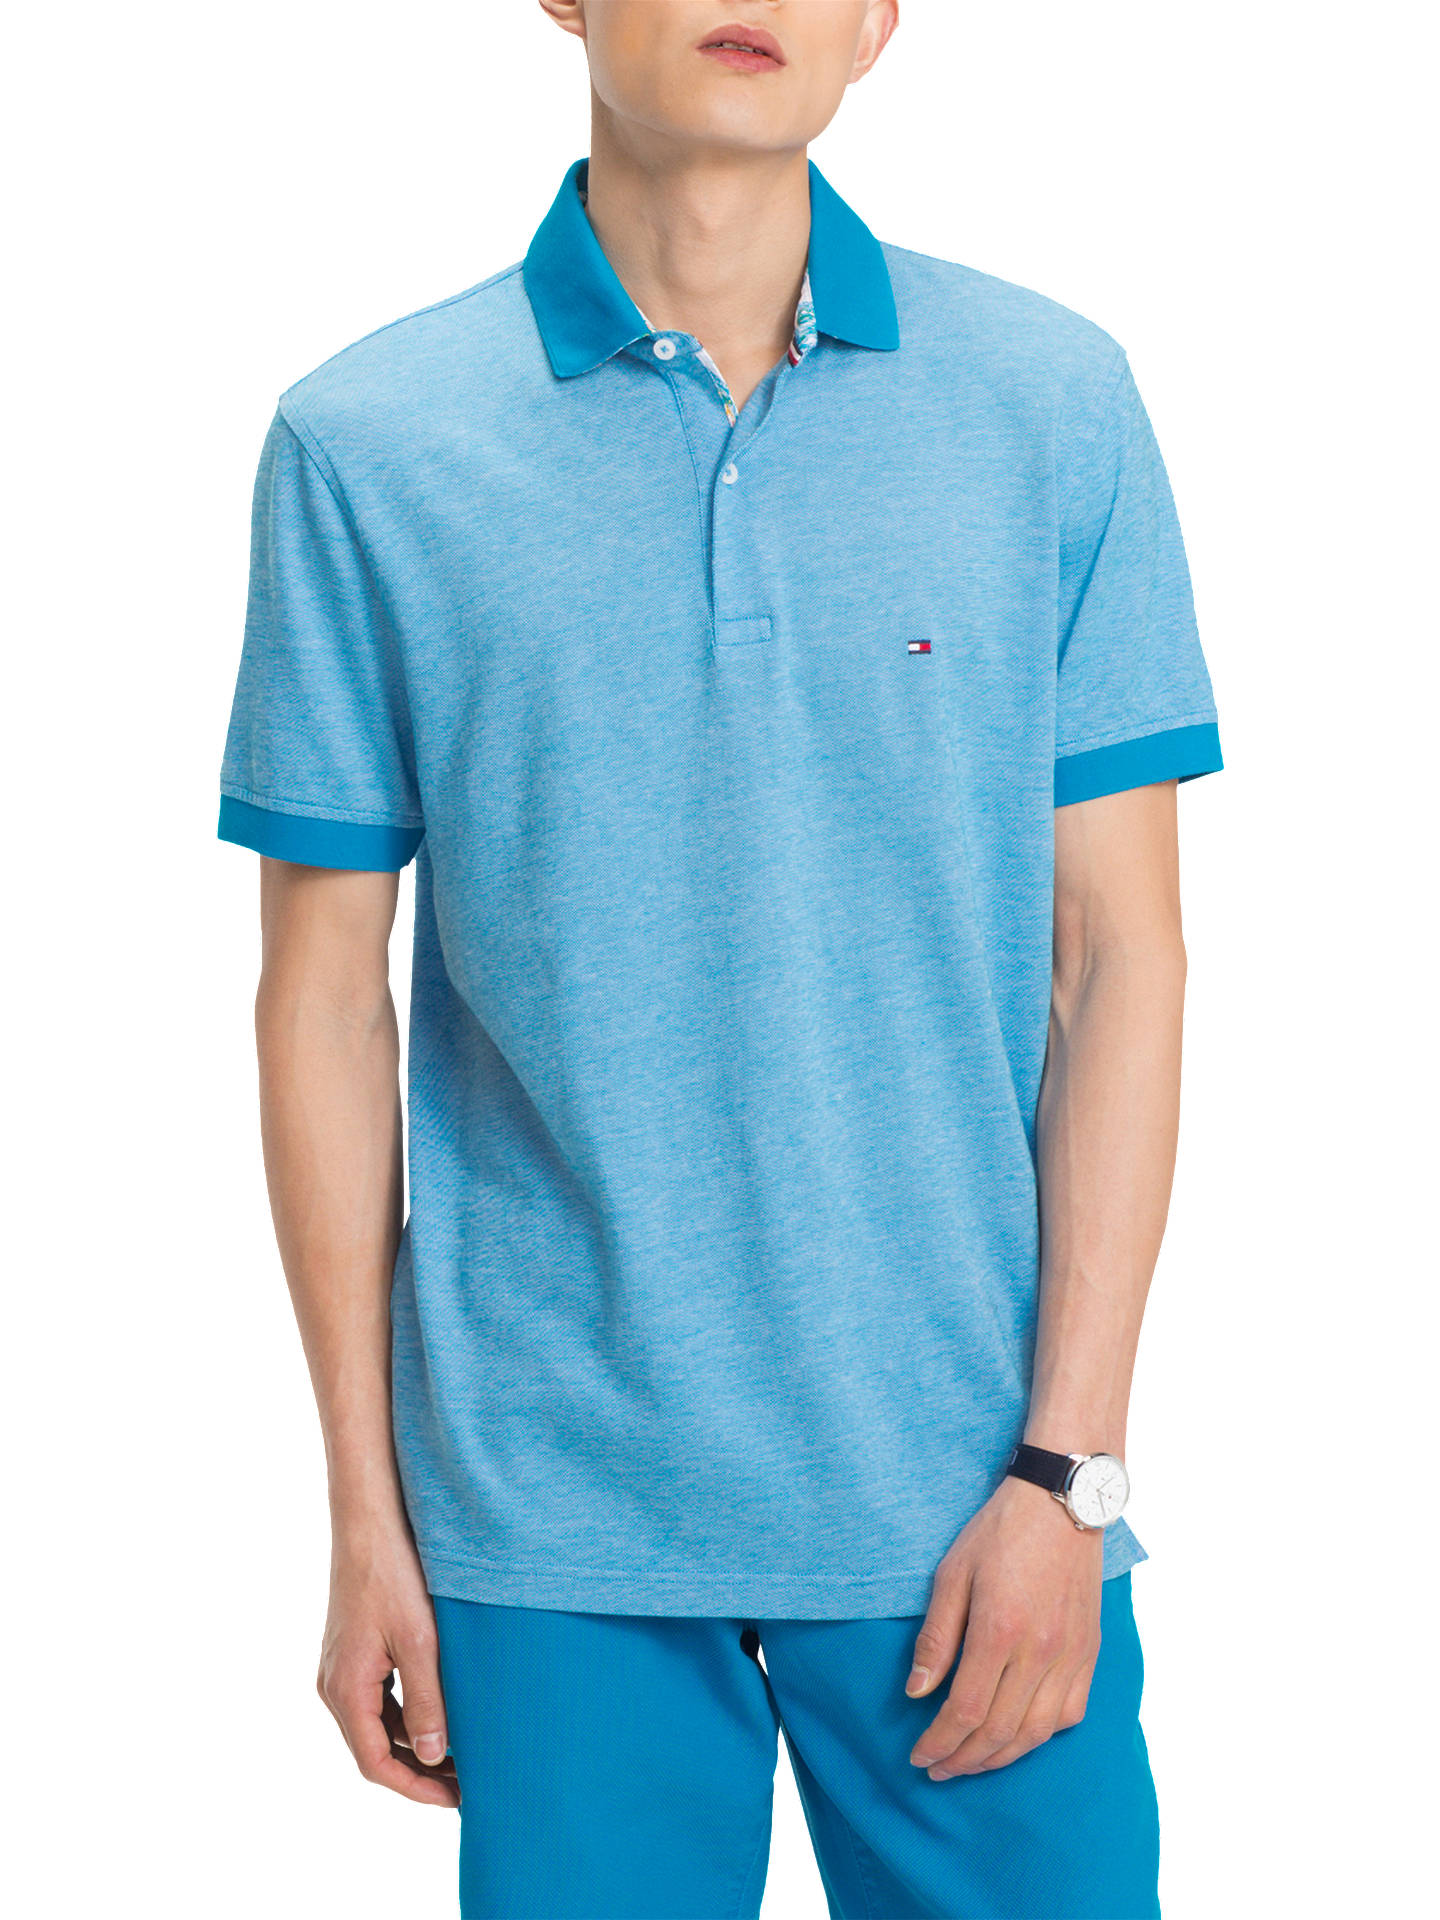 8effde5e Buy Tommy Hilfiger Printed Undercollar Polo Shirt, Blue, L Online at  johnlewis.com ...